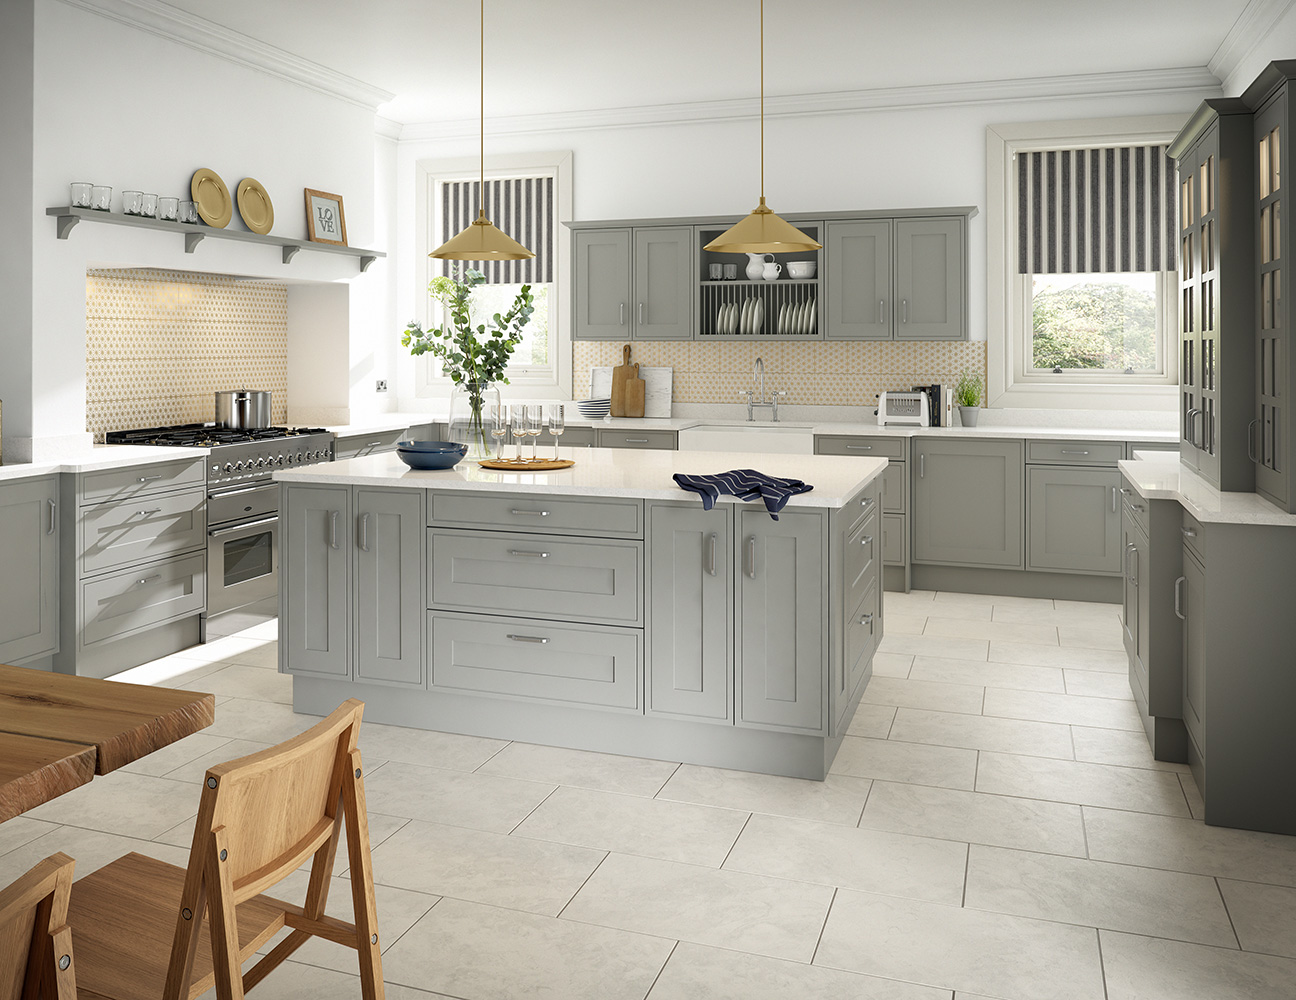 cannadines | kitchen, bathroom & bedroom designers in sussex